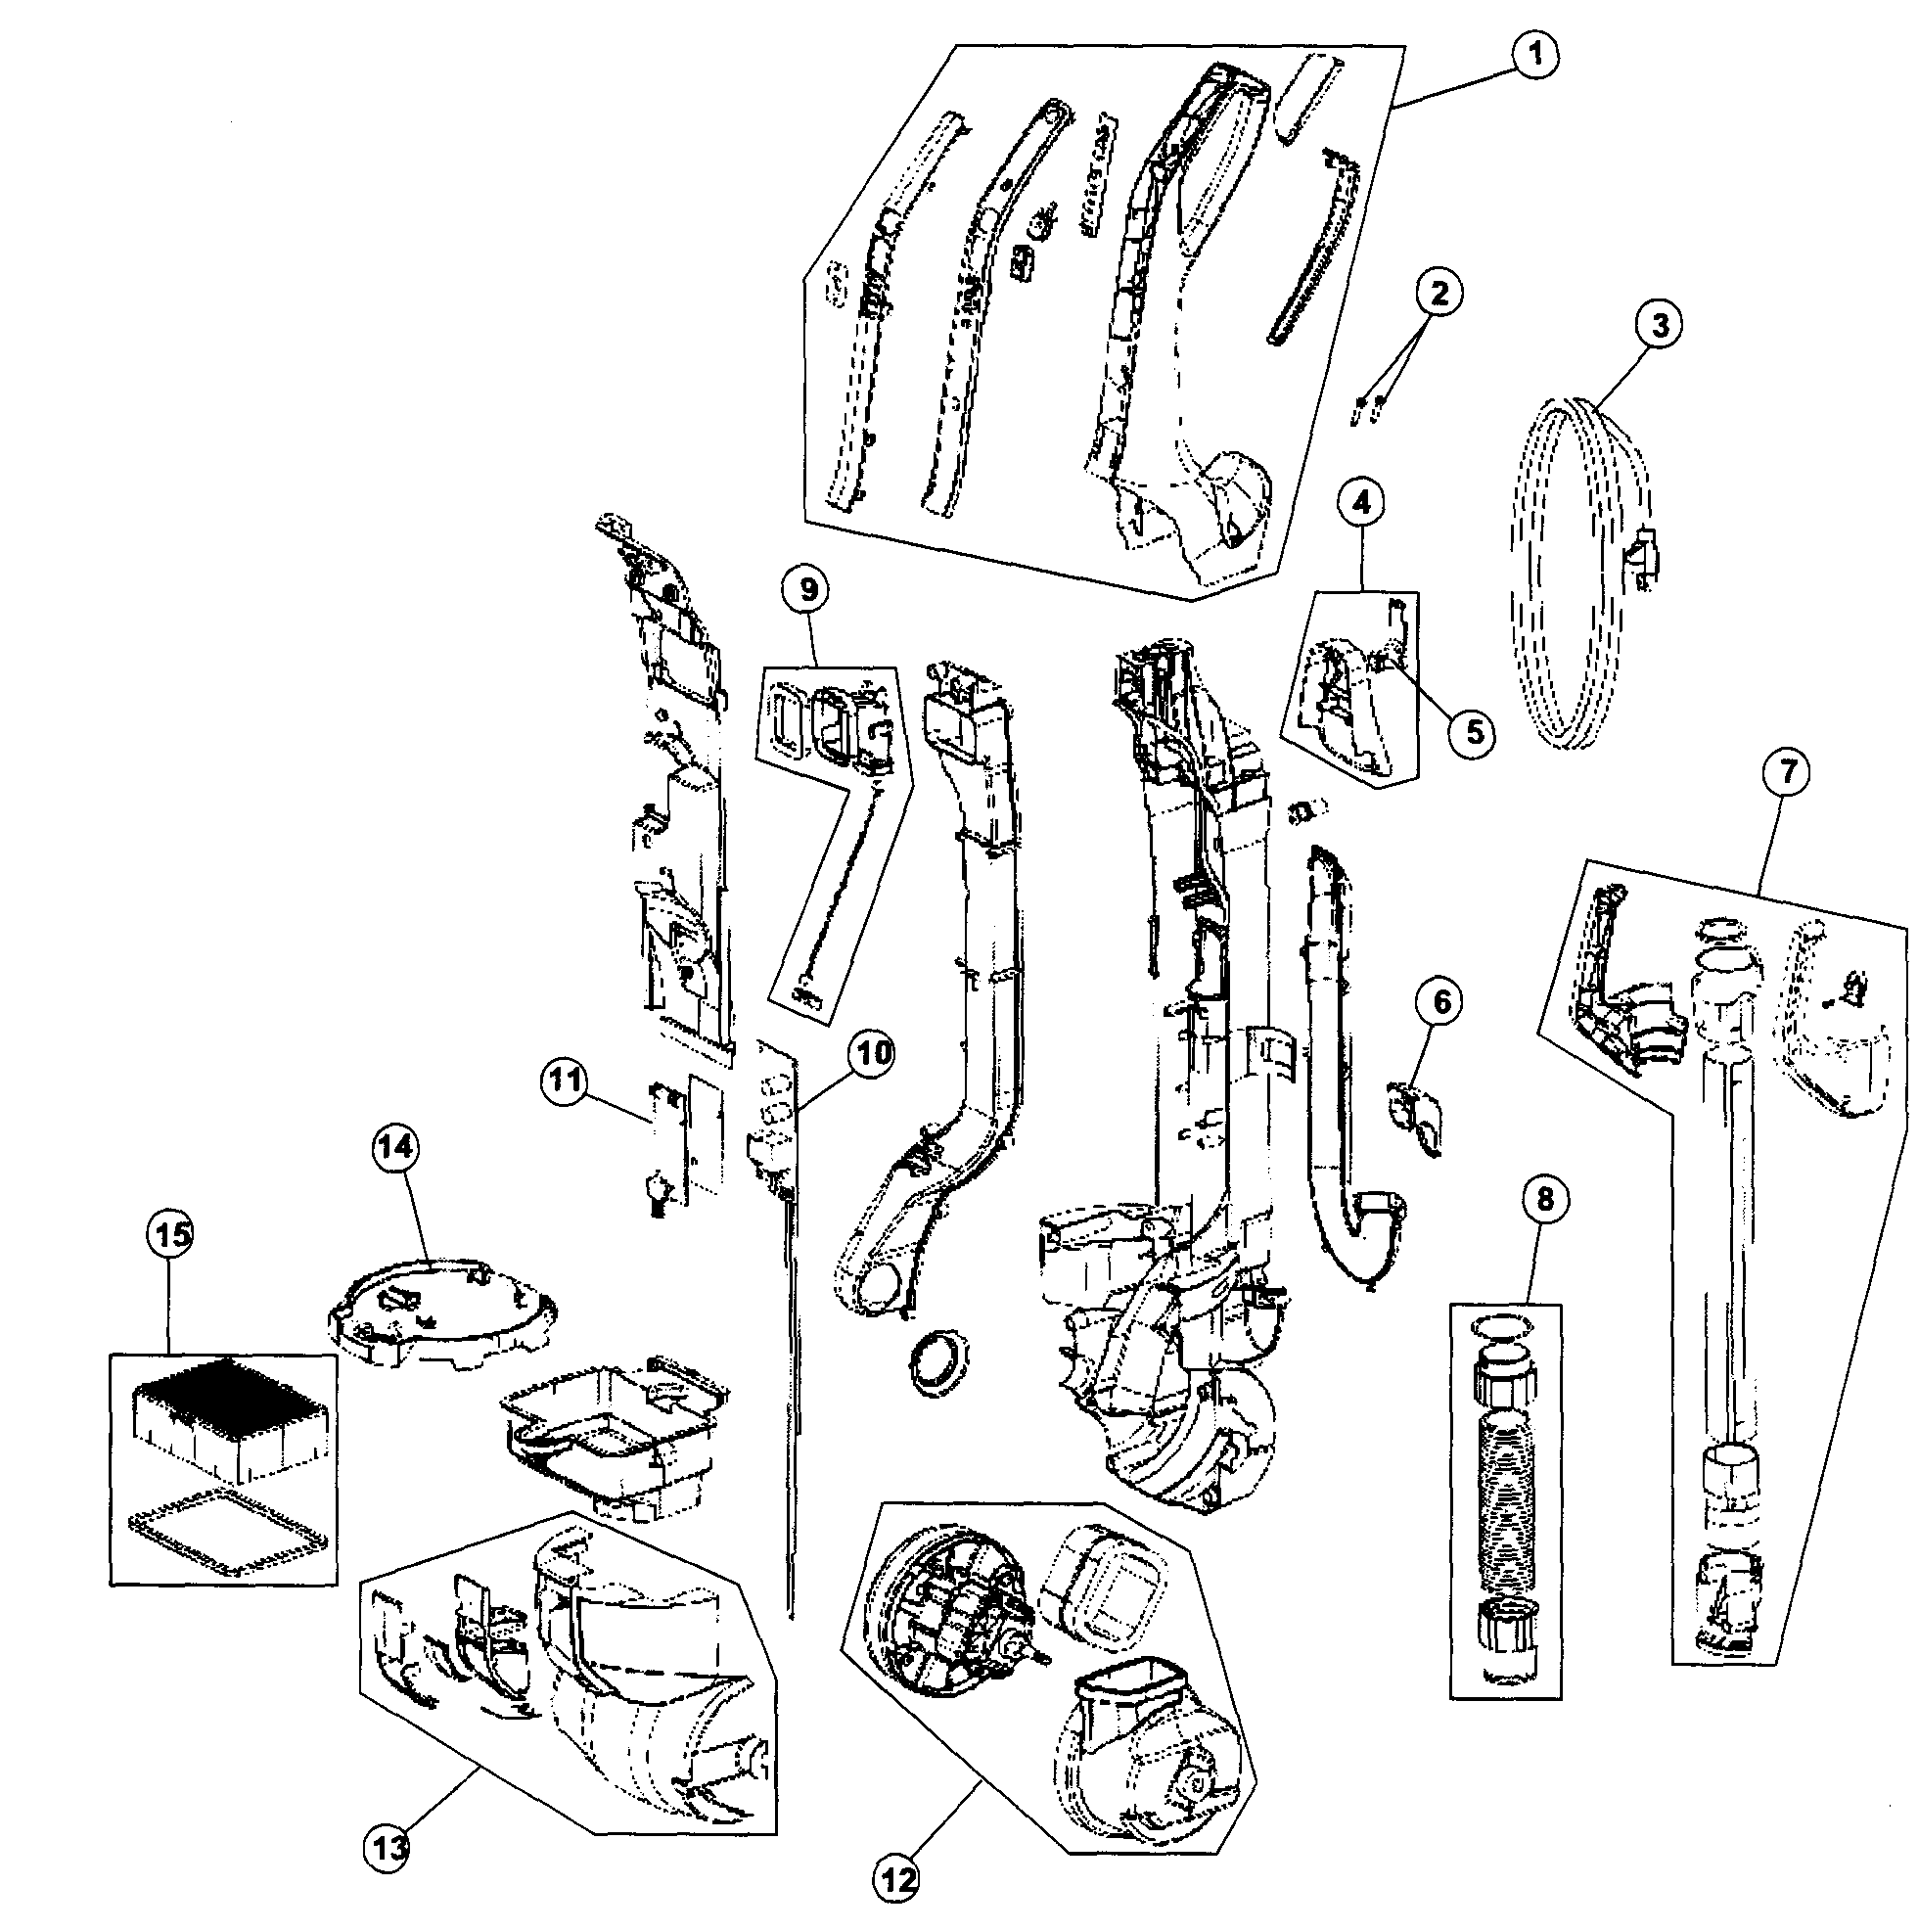 Hoover UH70015 handle assy diagram